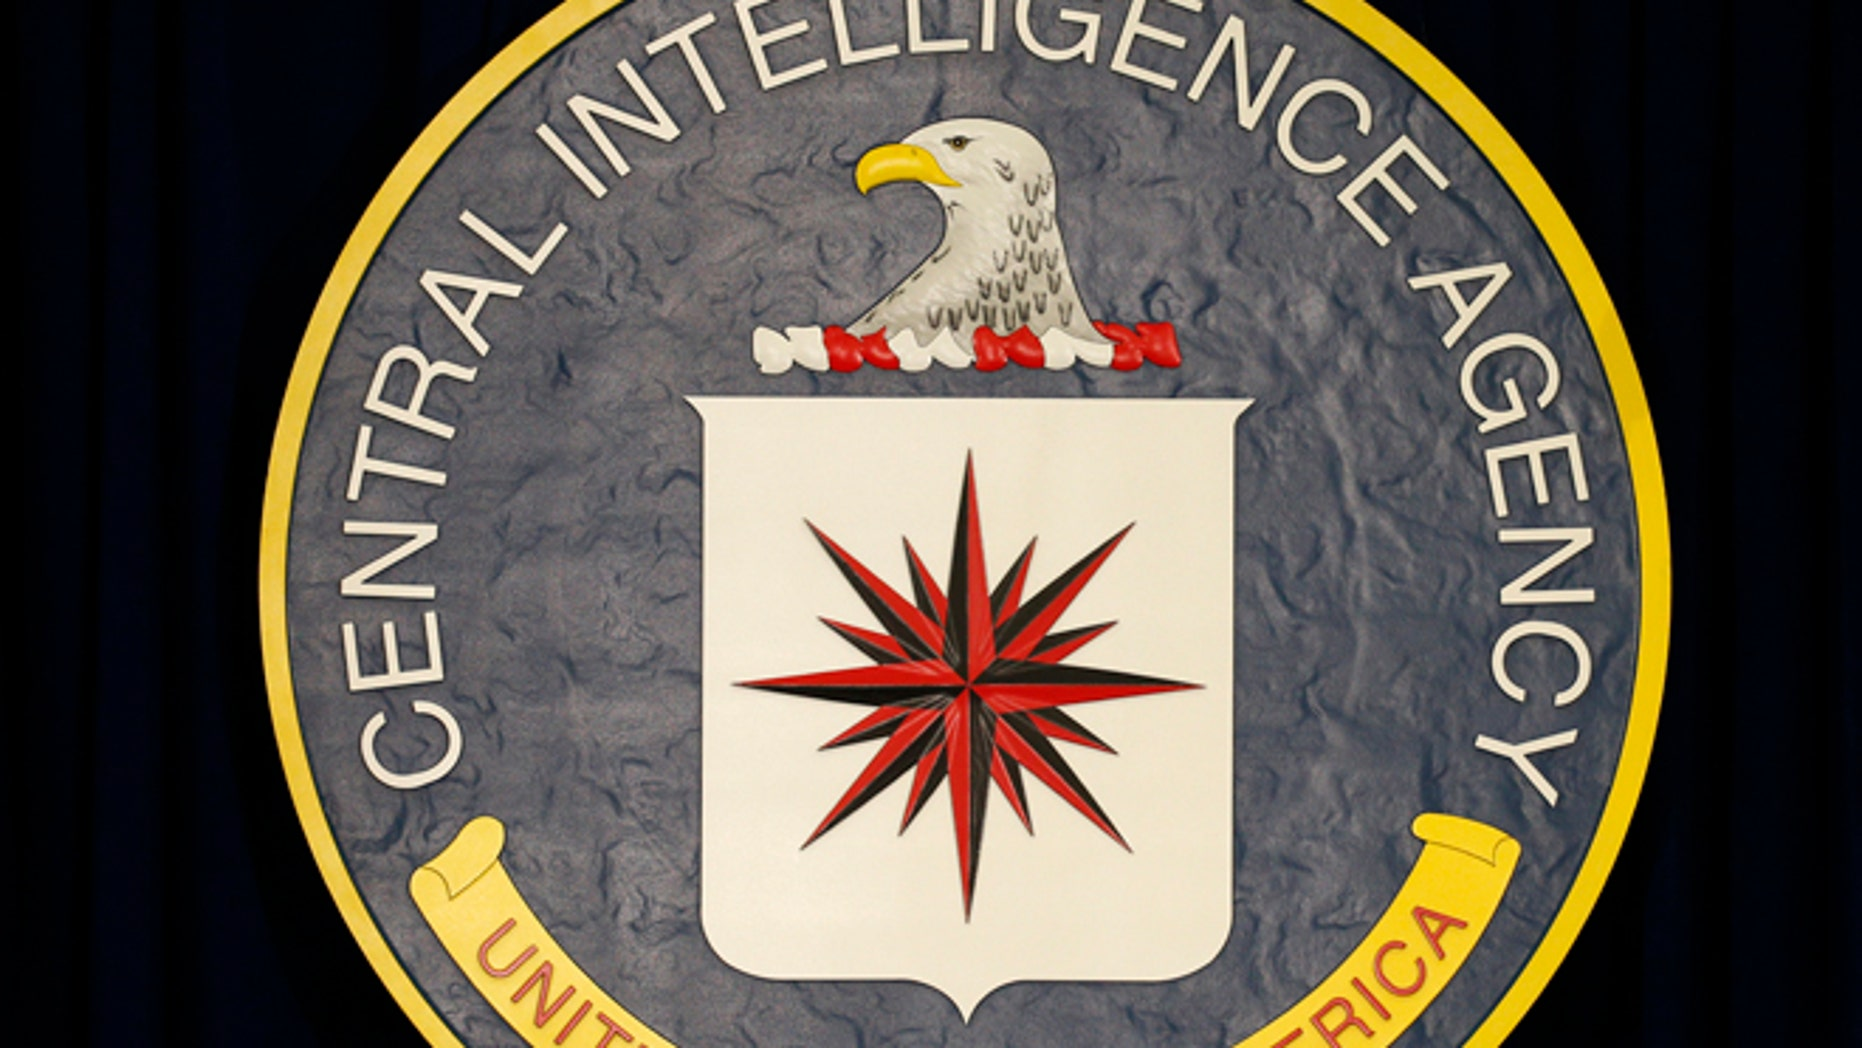 April 13, 2016: The CIA sign is seen onstage before the arrival of U.S. President Barack Obama to speak following a meeting with his National Security Council at CIA Headquarters in Langley, Virginia.